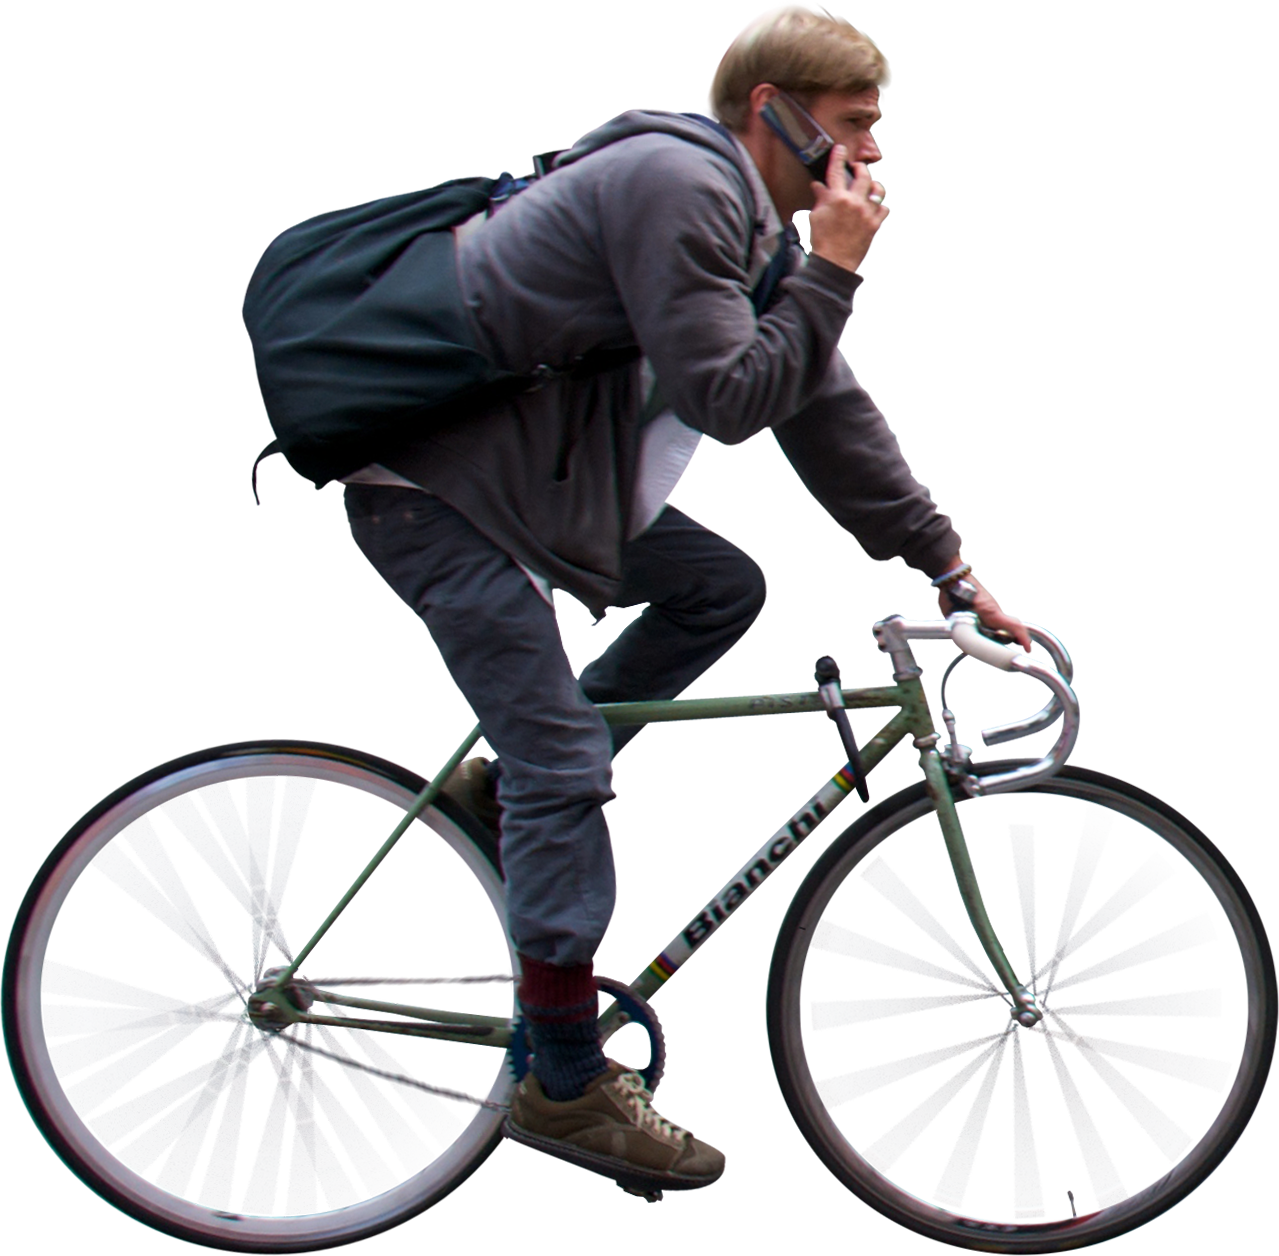 man riding bicycle and using phone.